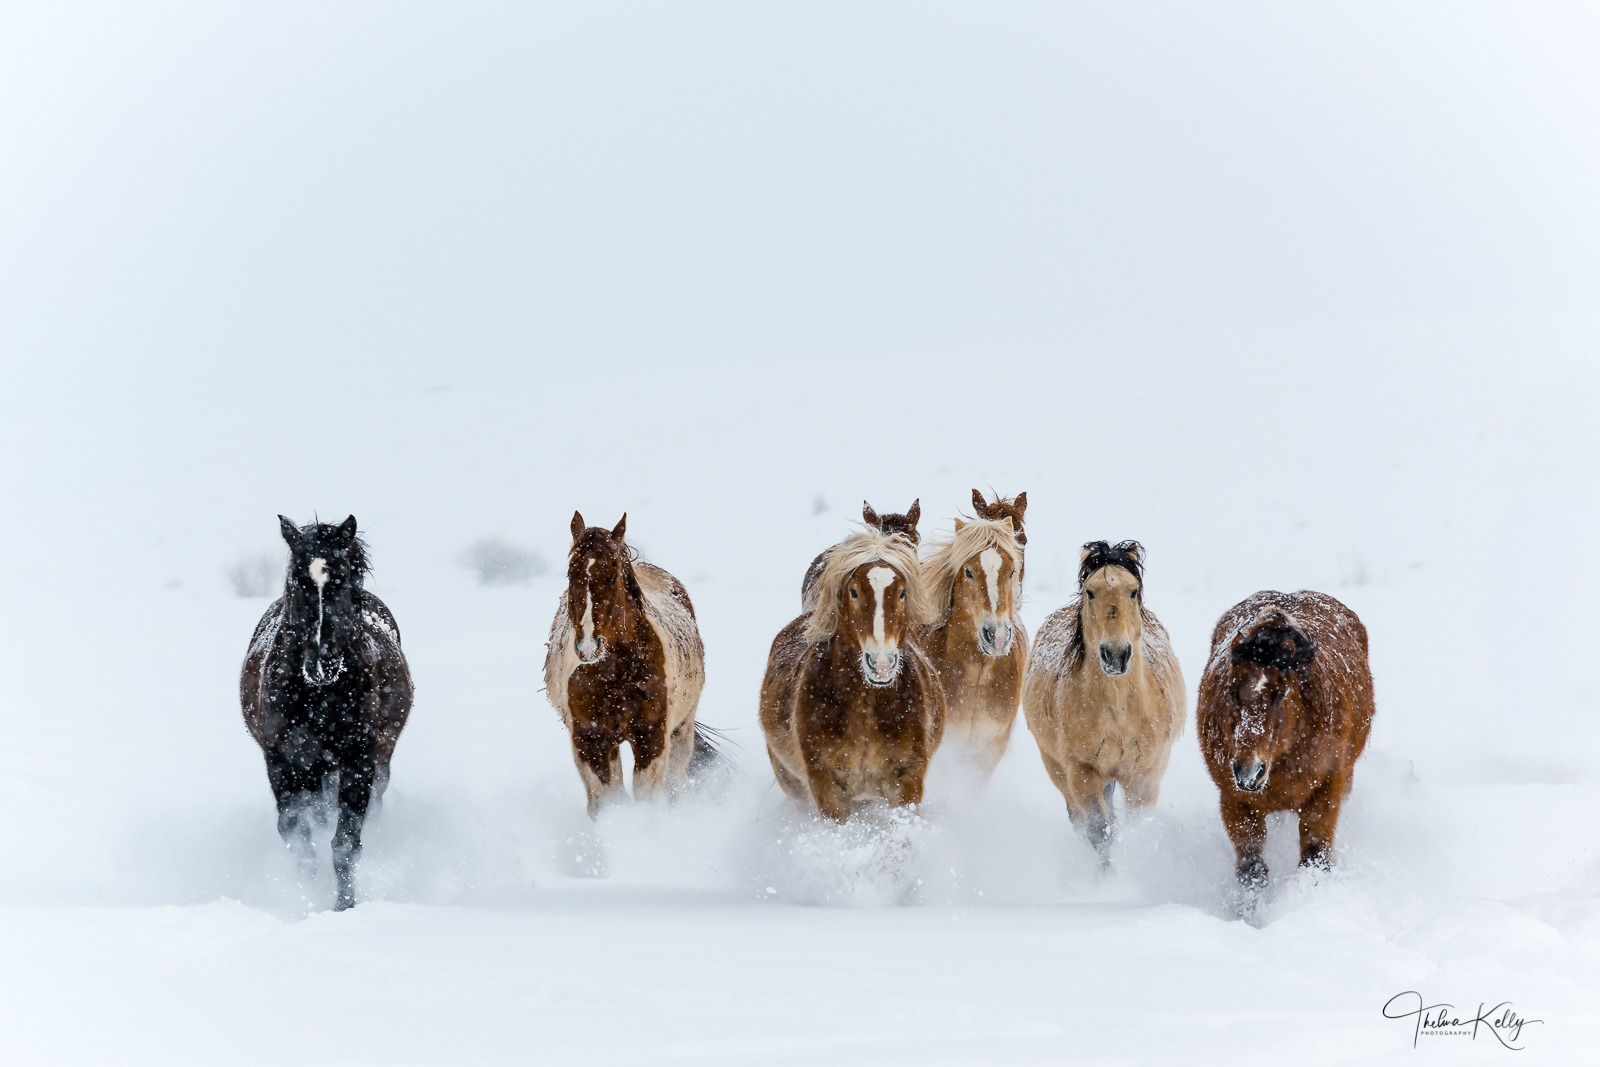 A winter wonderland horse race to the finish line!